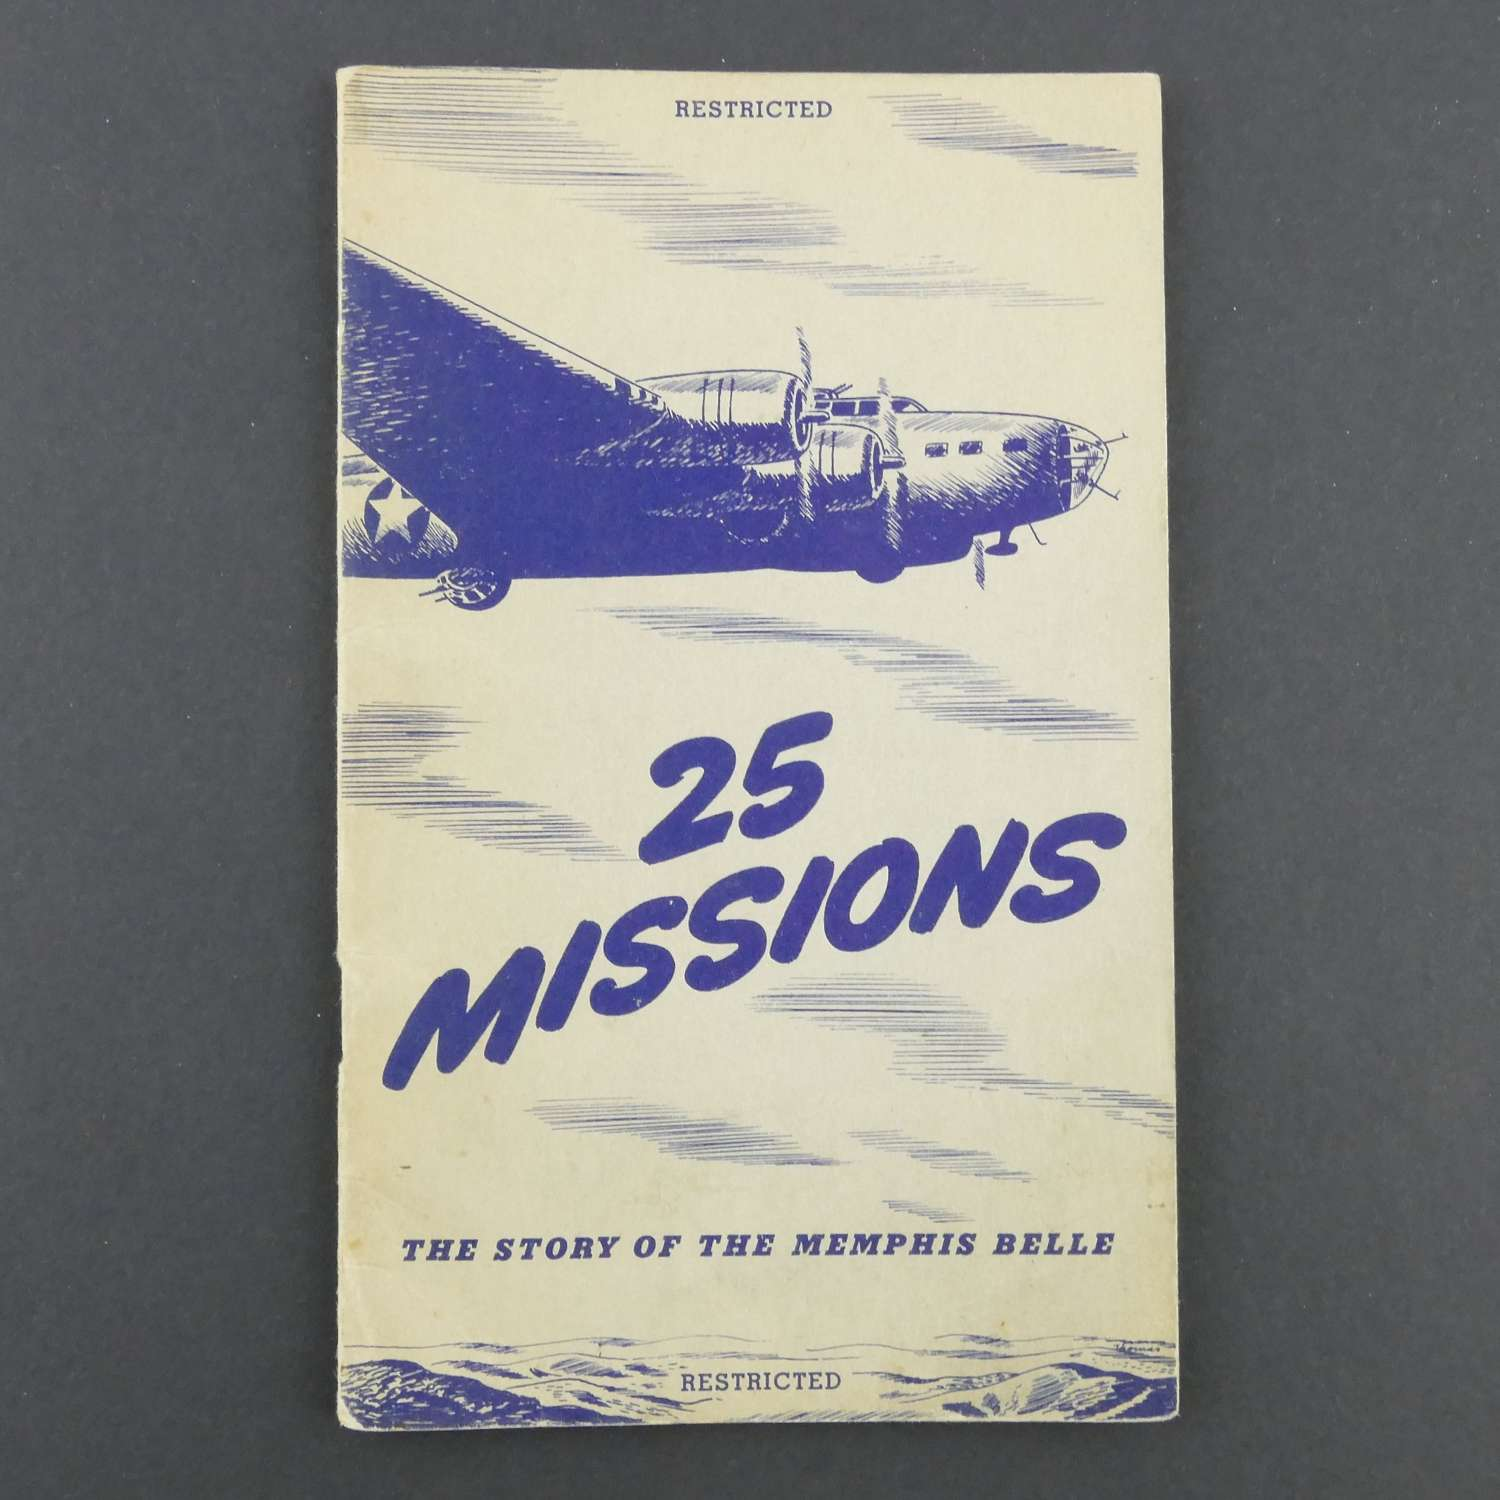 25 Missions - The Story of the Memphis Belle, 1943